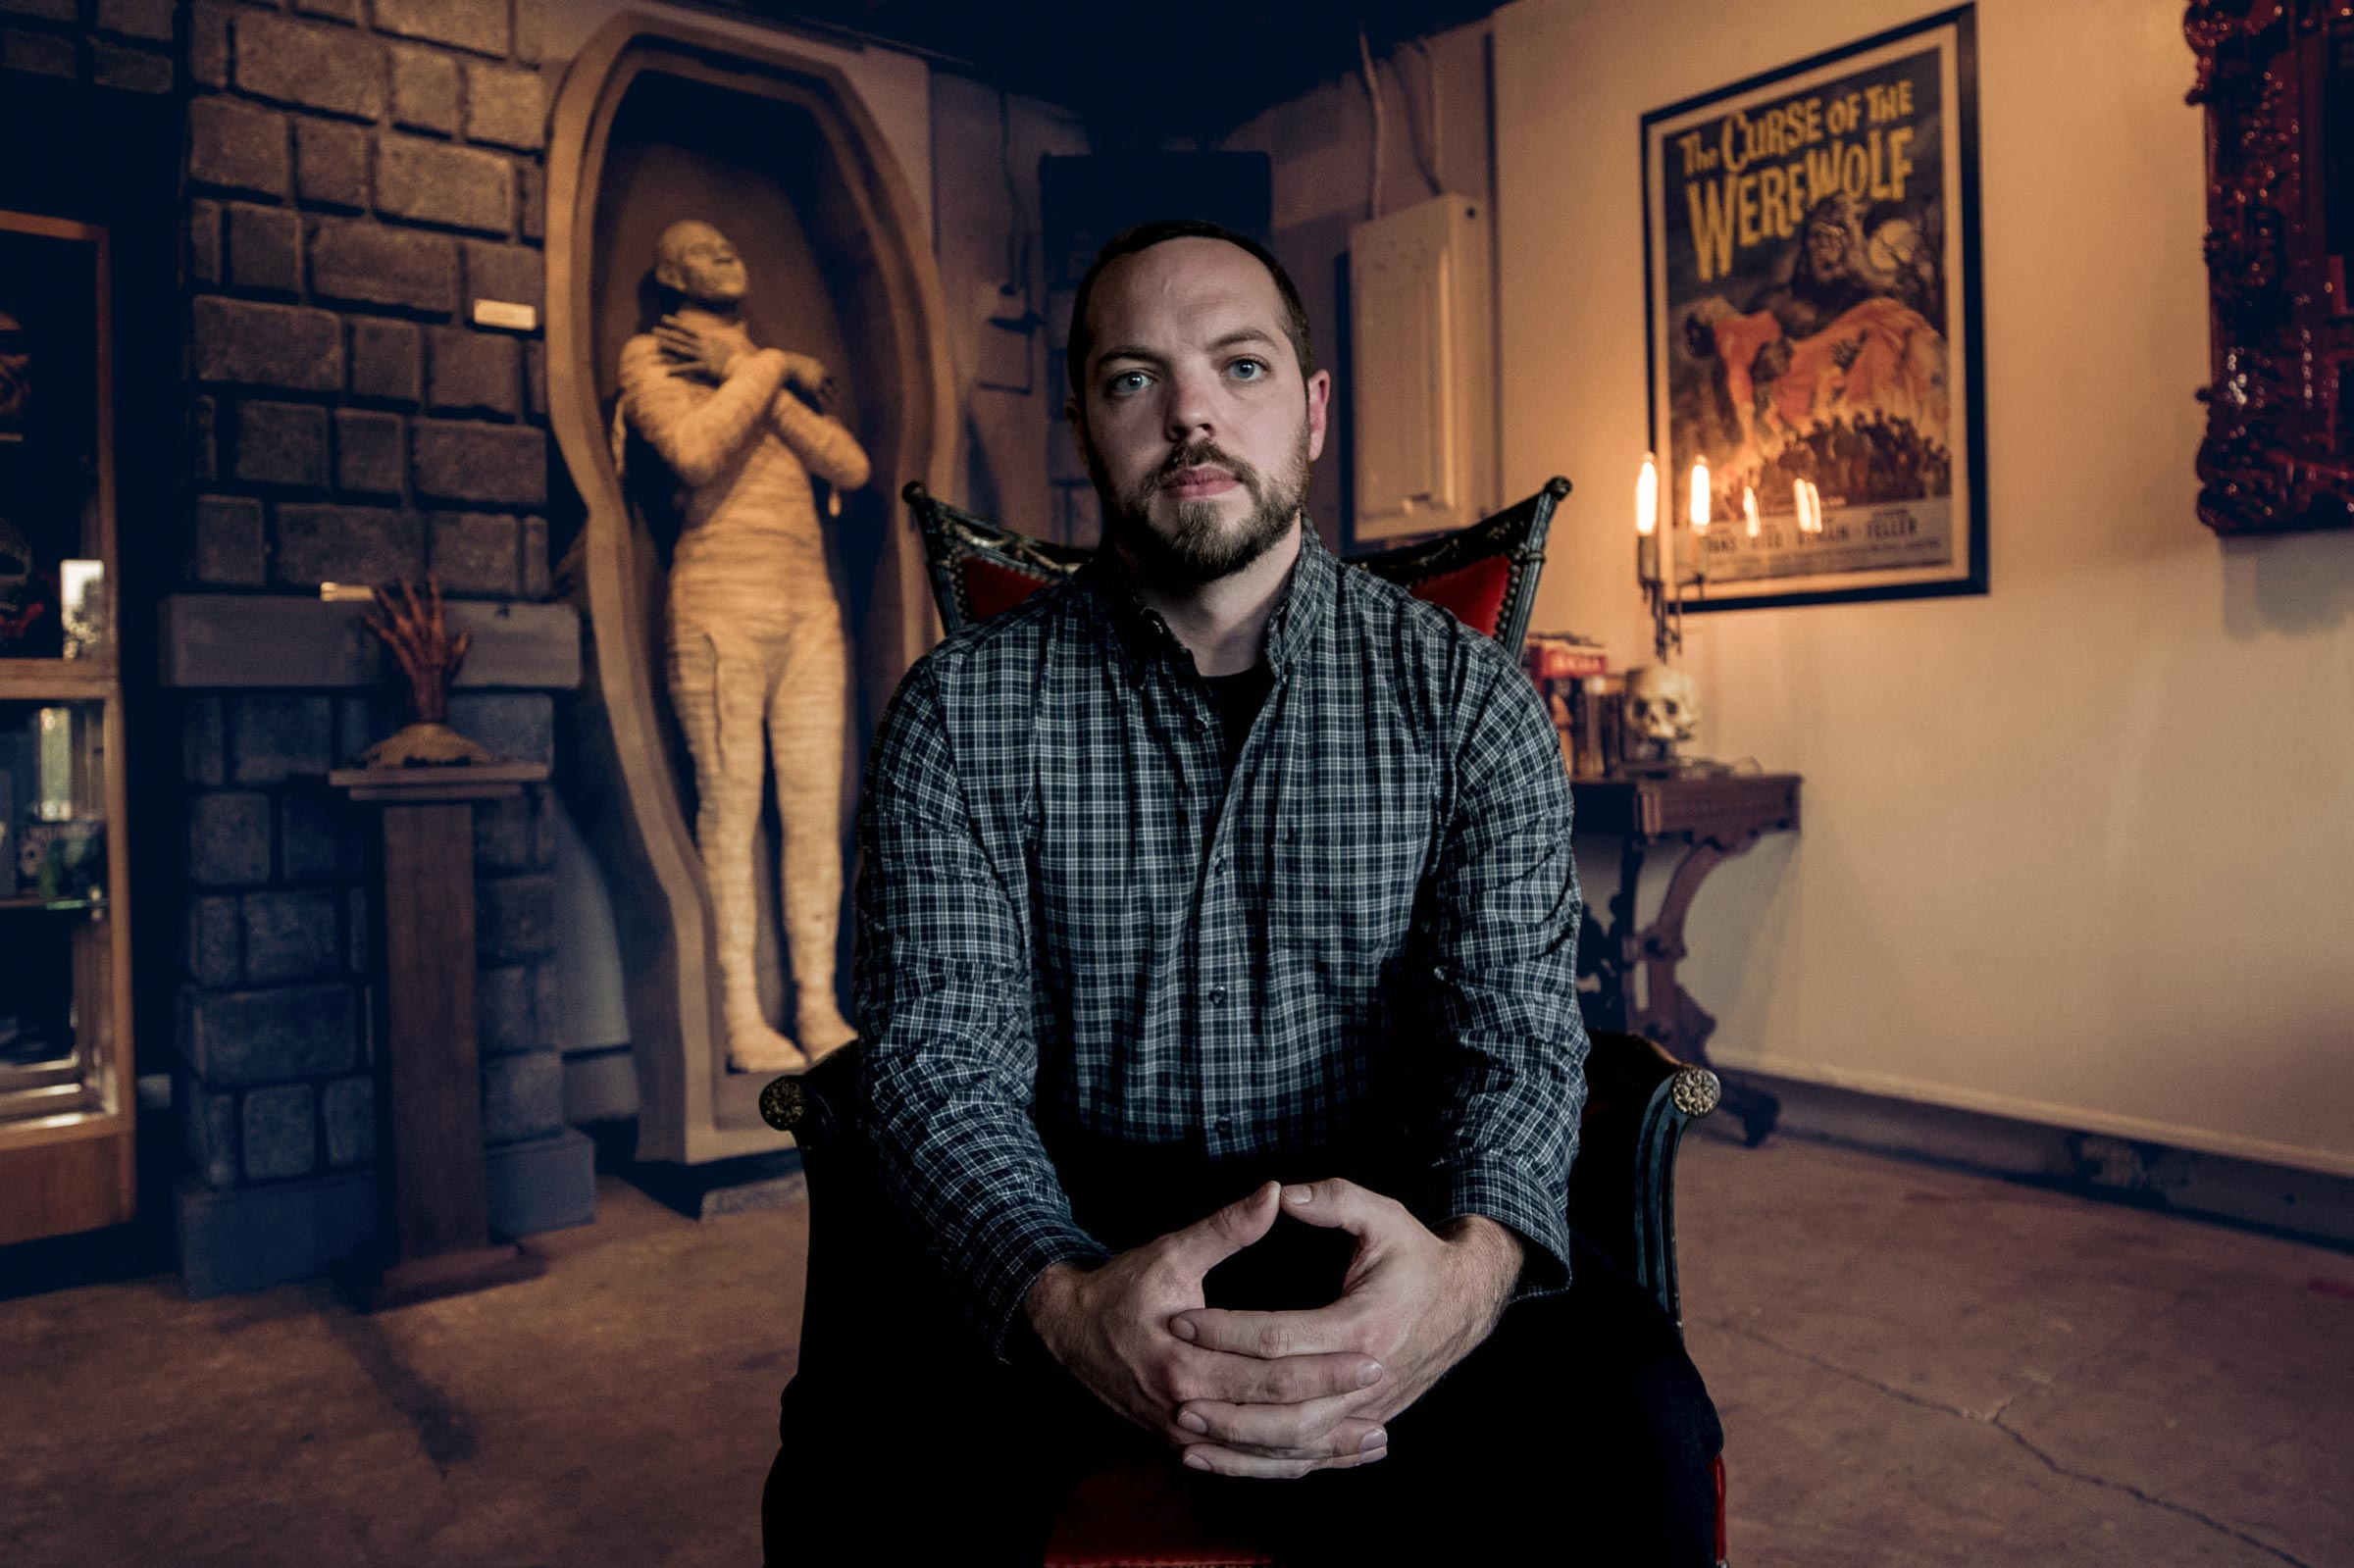 Portrait of a man in a chair in a horror-themed gallery